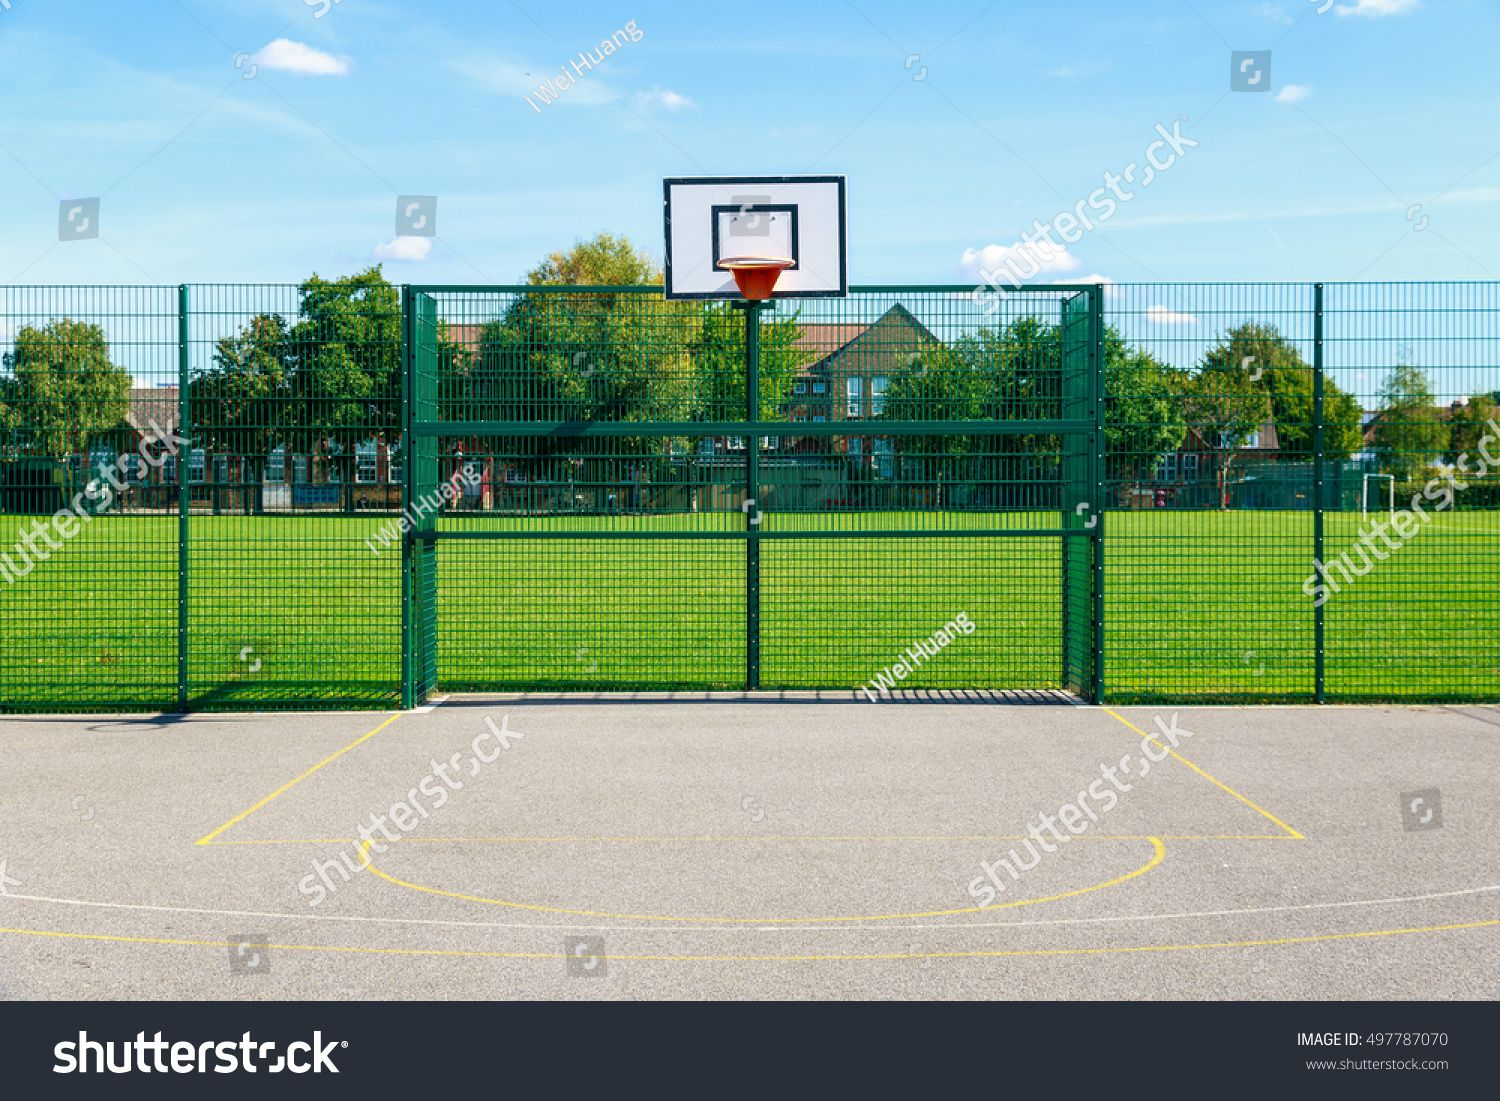 Public Outdoor Basketball Court In A Park Sponsored Spon Outdoor Public Basketball Park Outdoor Basketball Court Basketball Park Outdoor